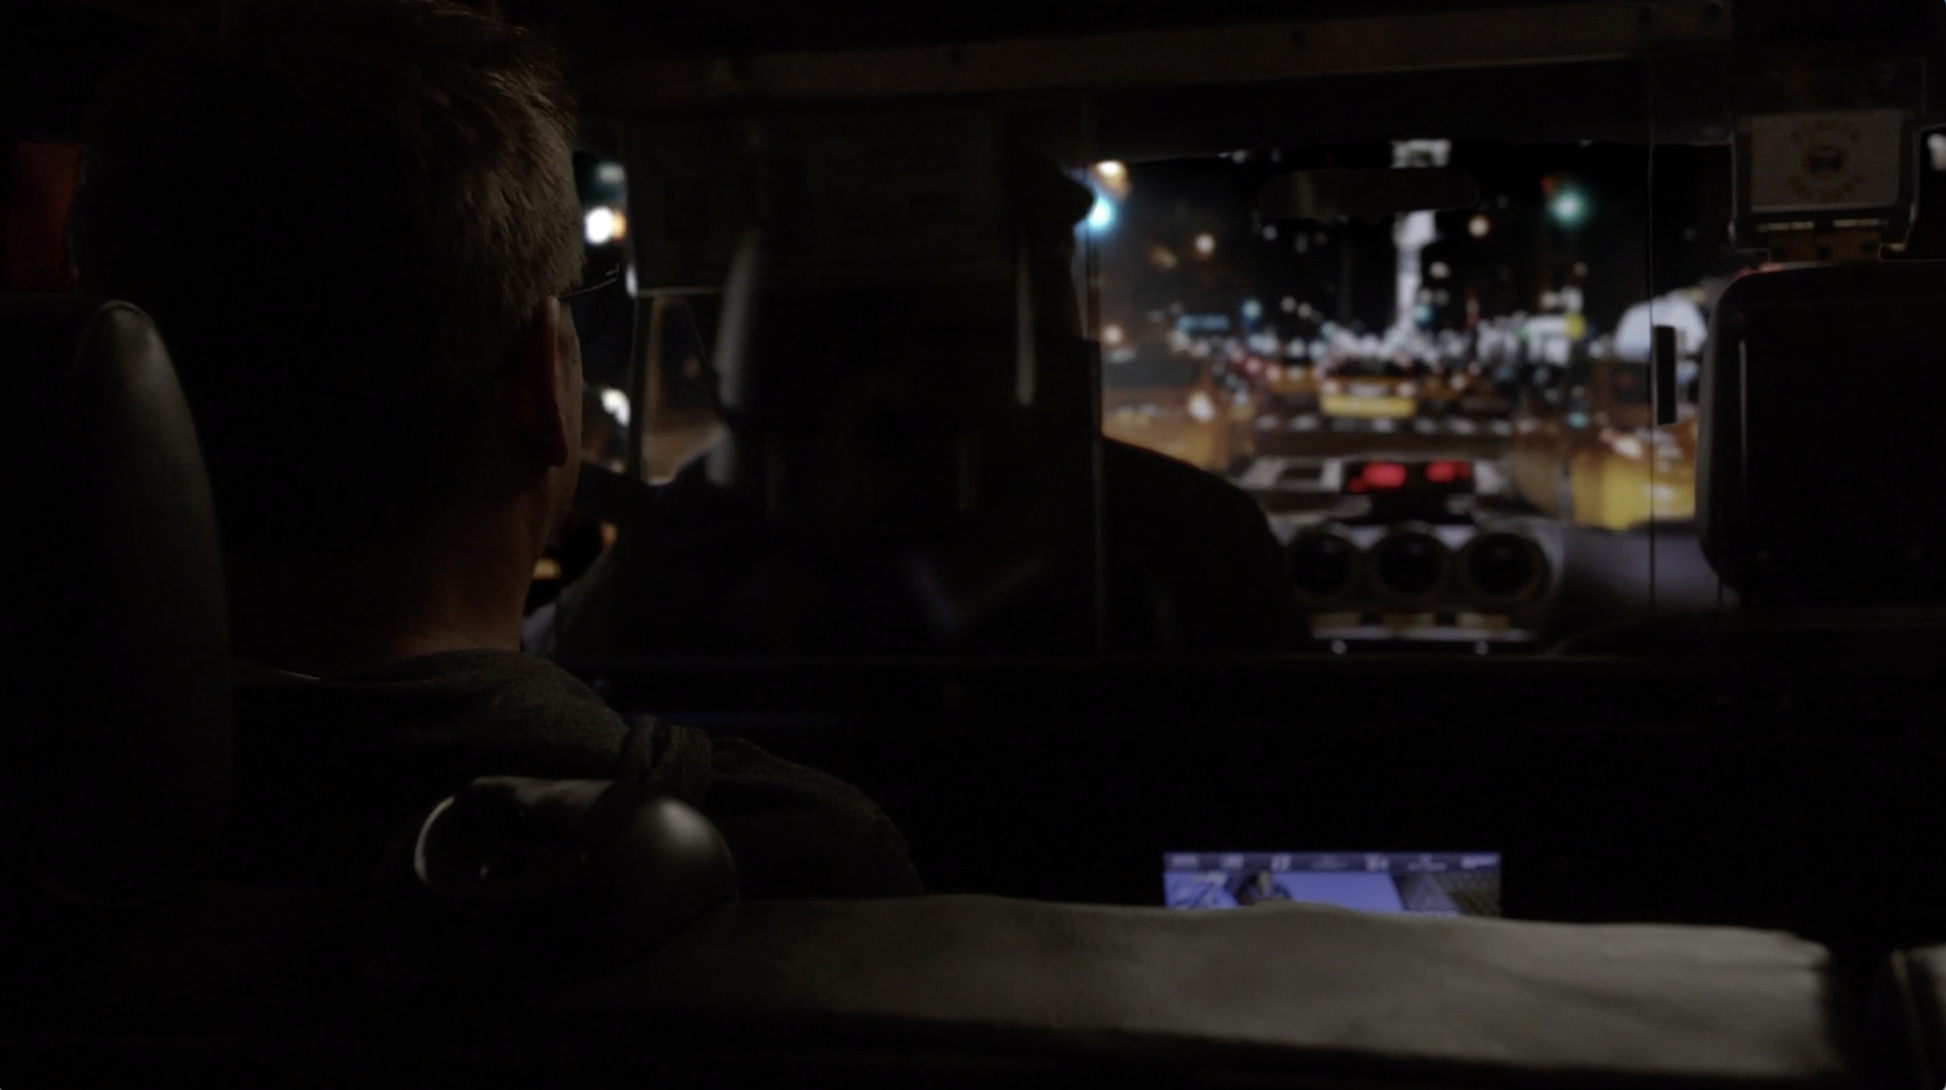 Bull Driving Footage New York City S03E01 5.png